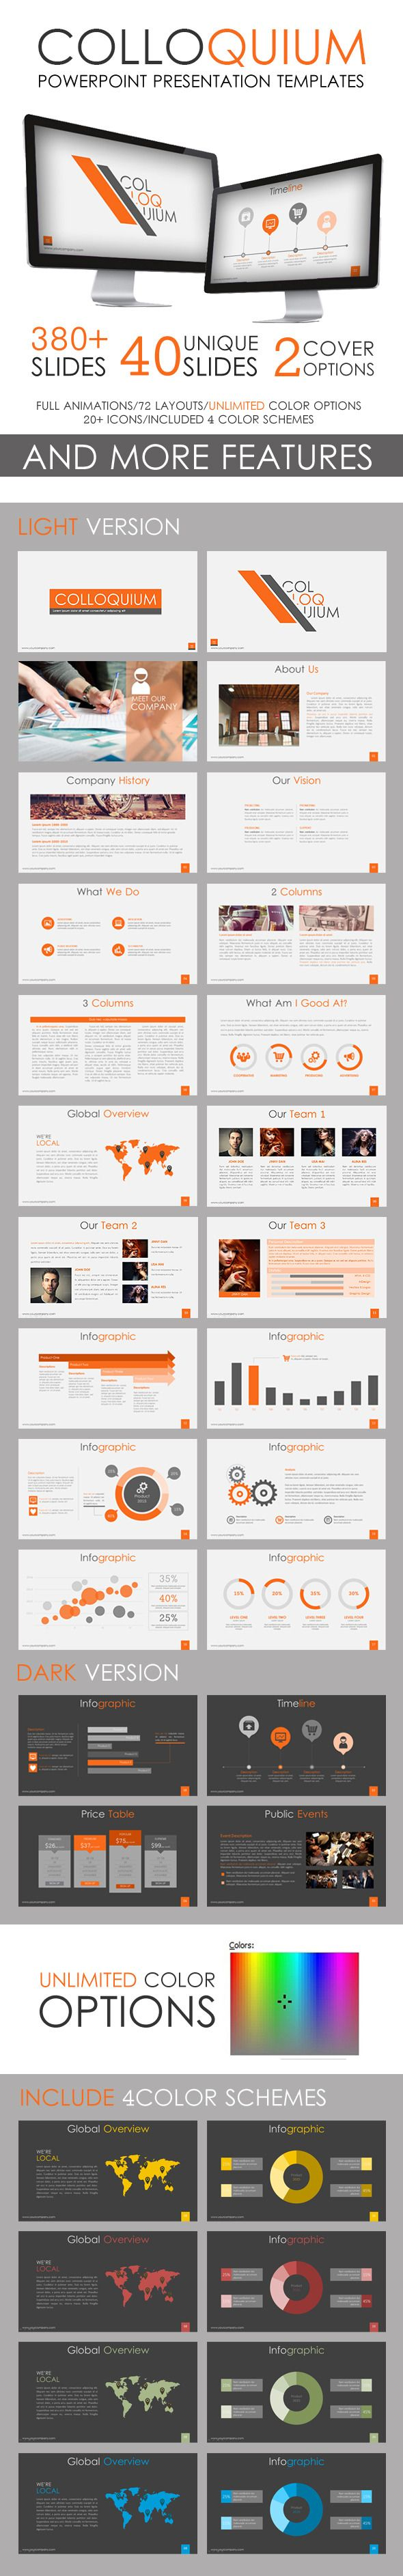 Colloquium PowerPoint Template #powerpoint #powerpointtemplate Download: http://graphicriver.net/item/colloquium-powerpoint-template/10330917?ref=ksioks